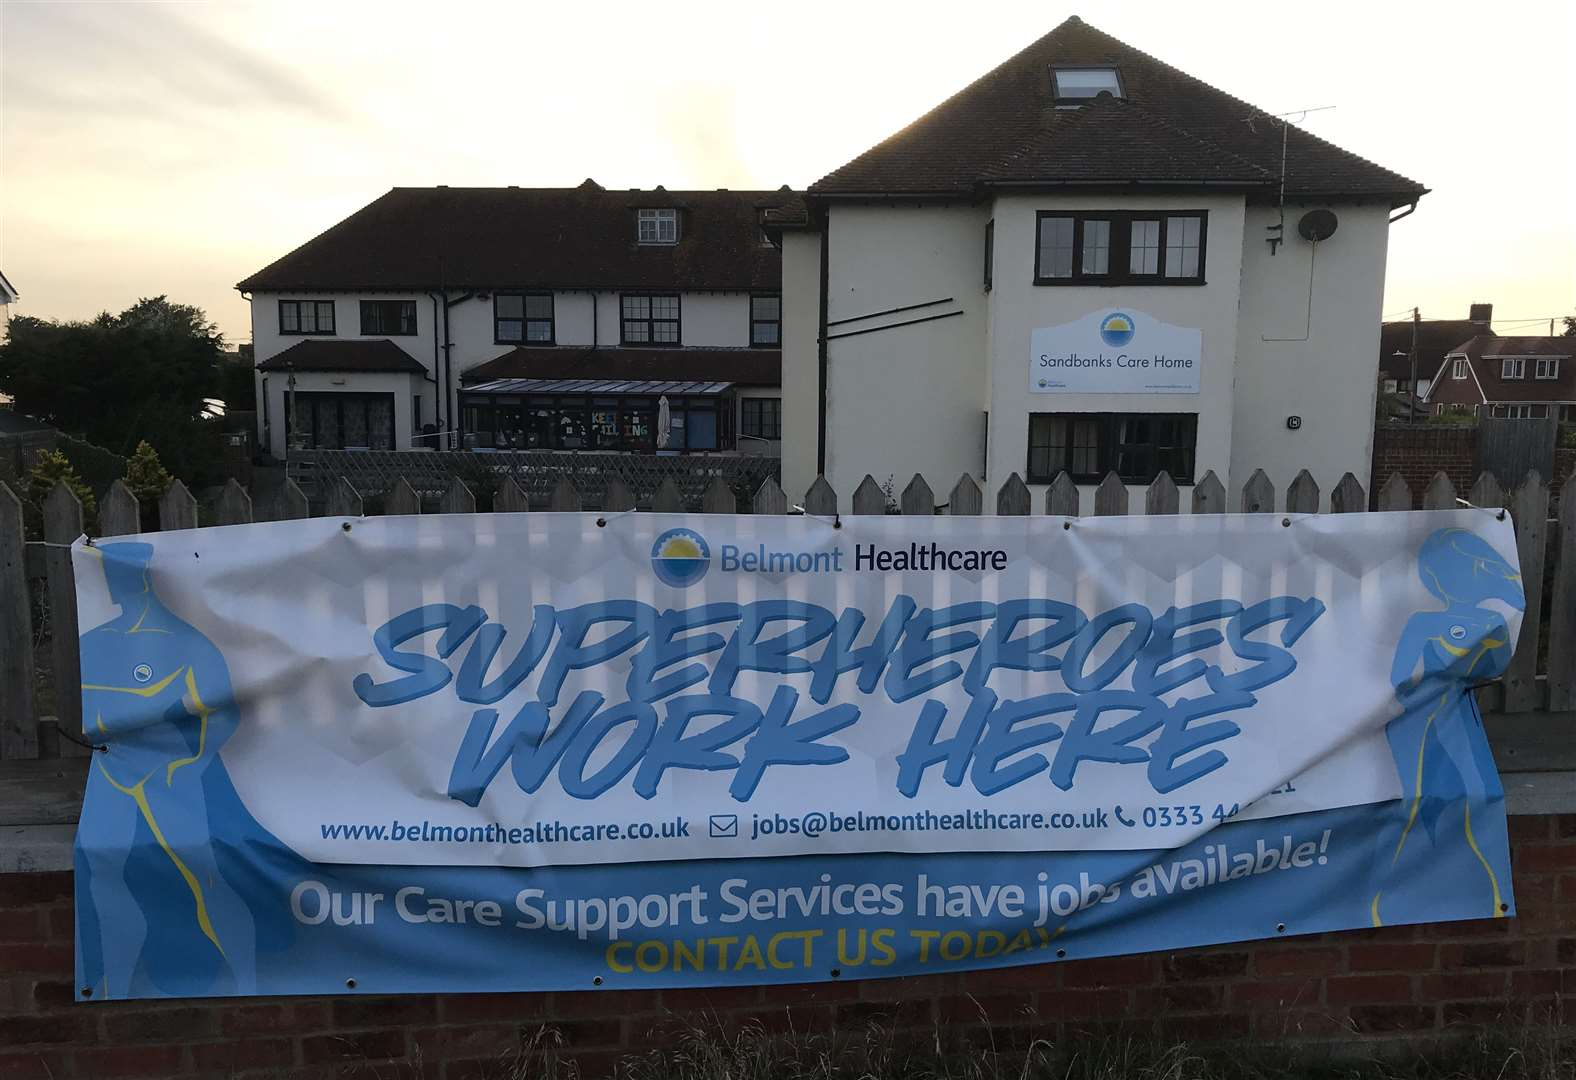 Sandbanks Care Home will close and plans are afoot to transform it into flats